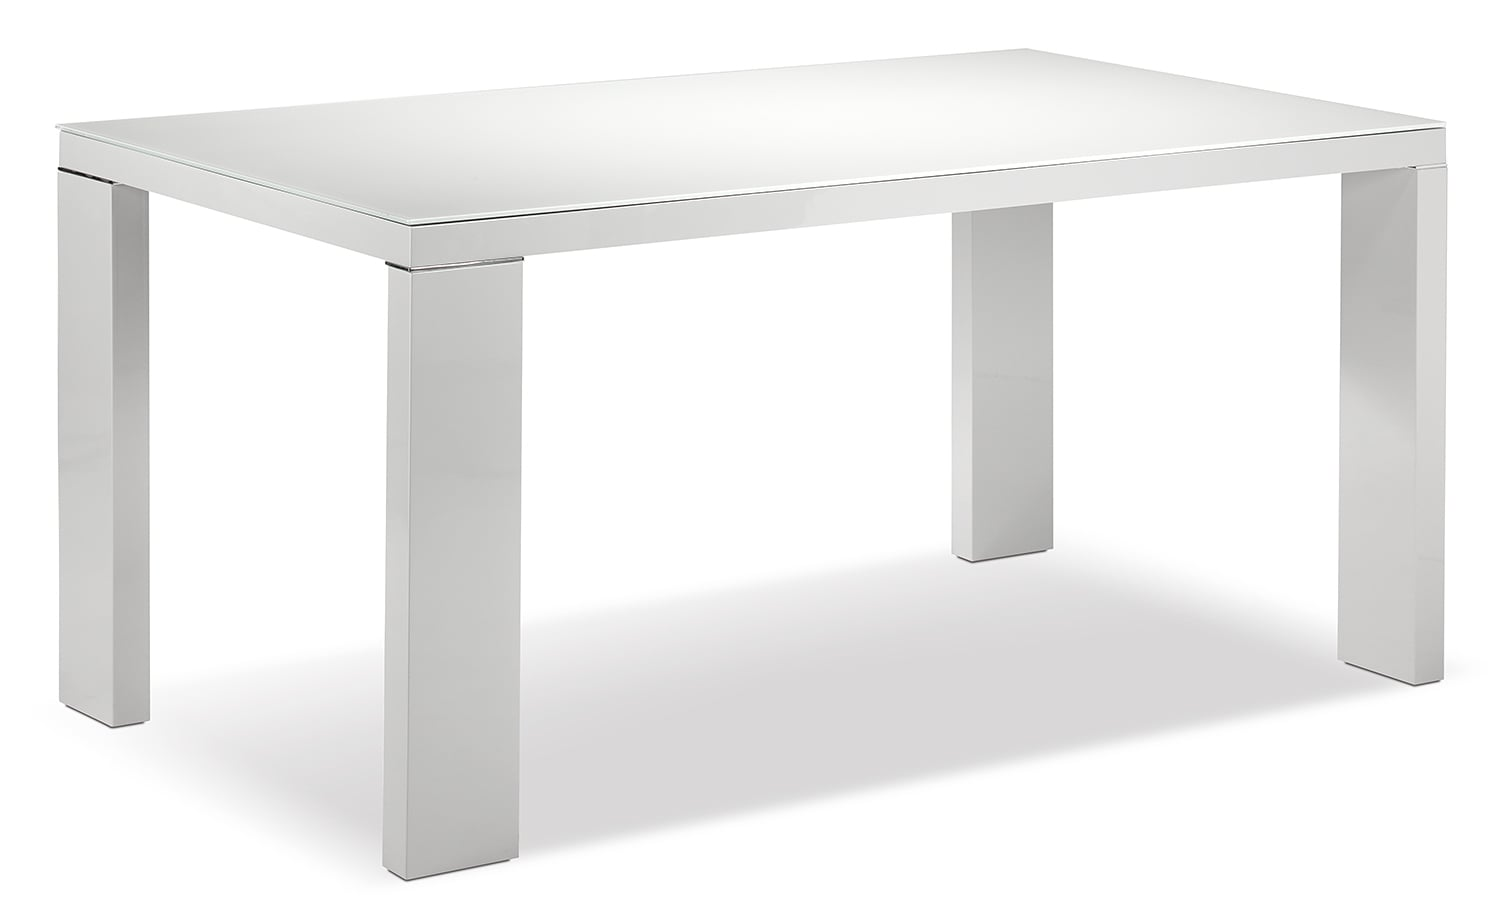 Dining Room Furniture - Bleecker Table - Light Grey